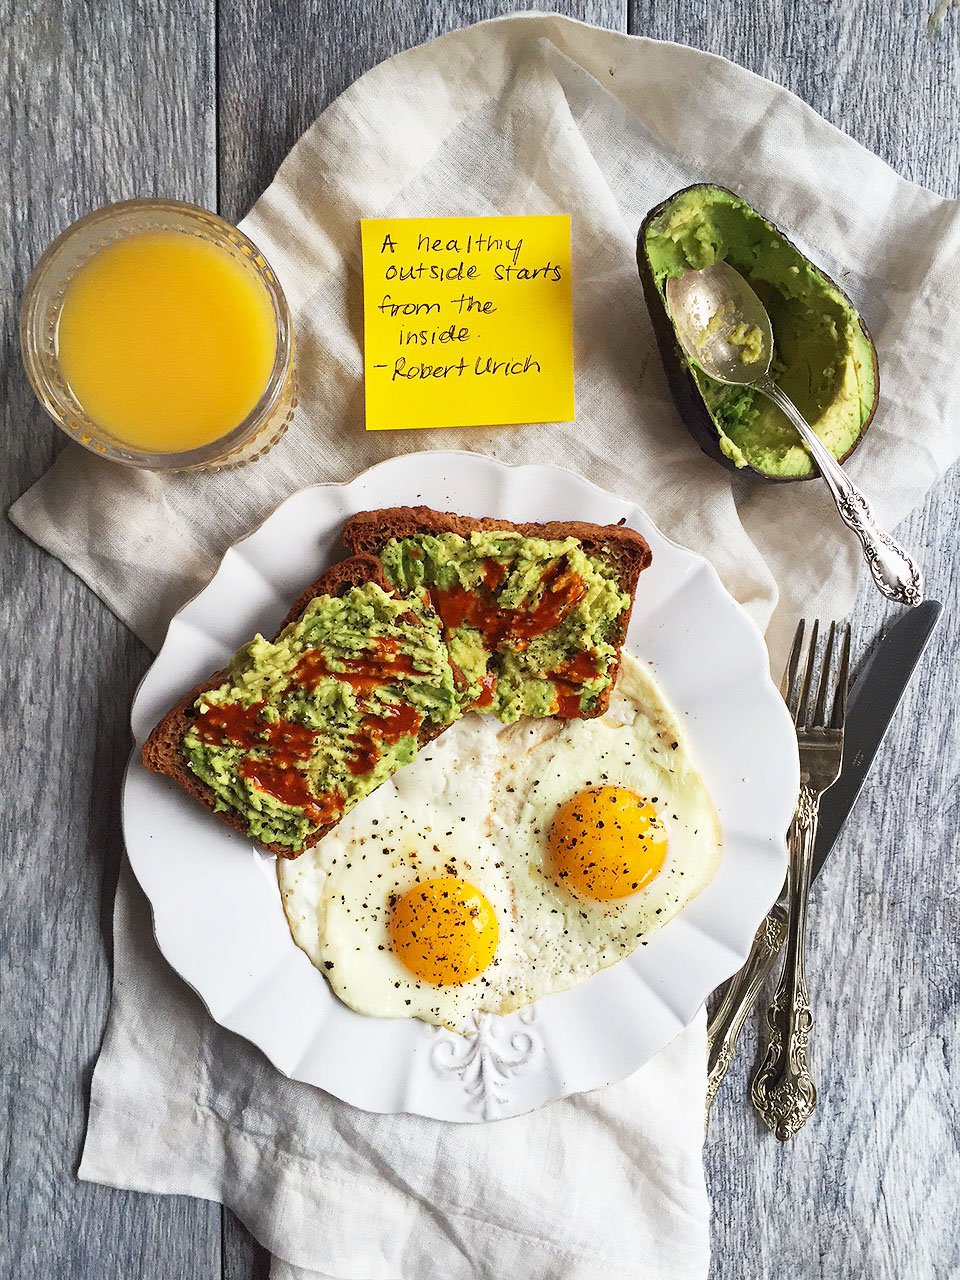 eggs and avocado toast on a plate next to a glass of orange juice